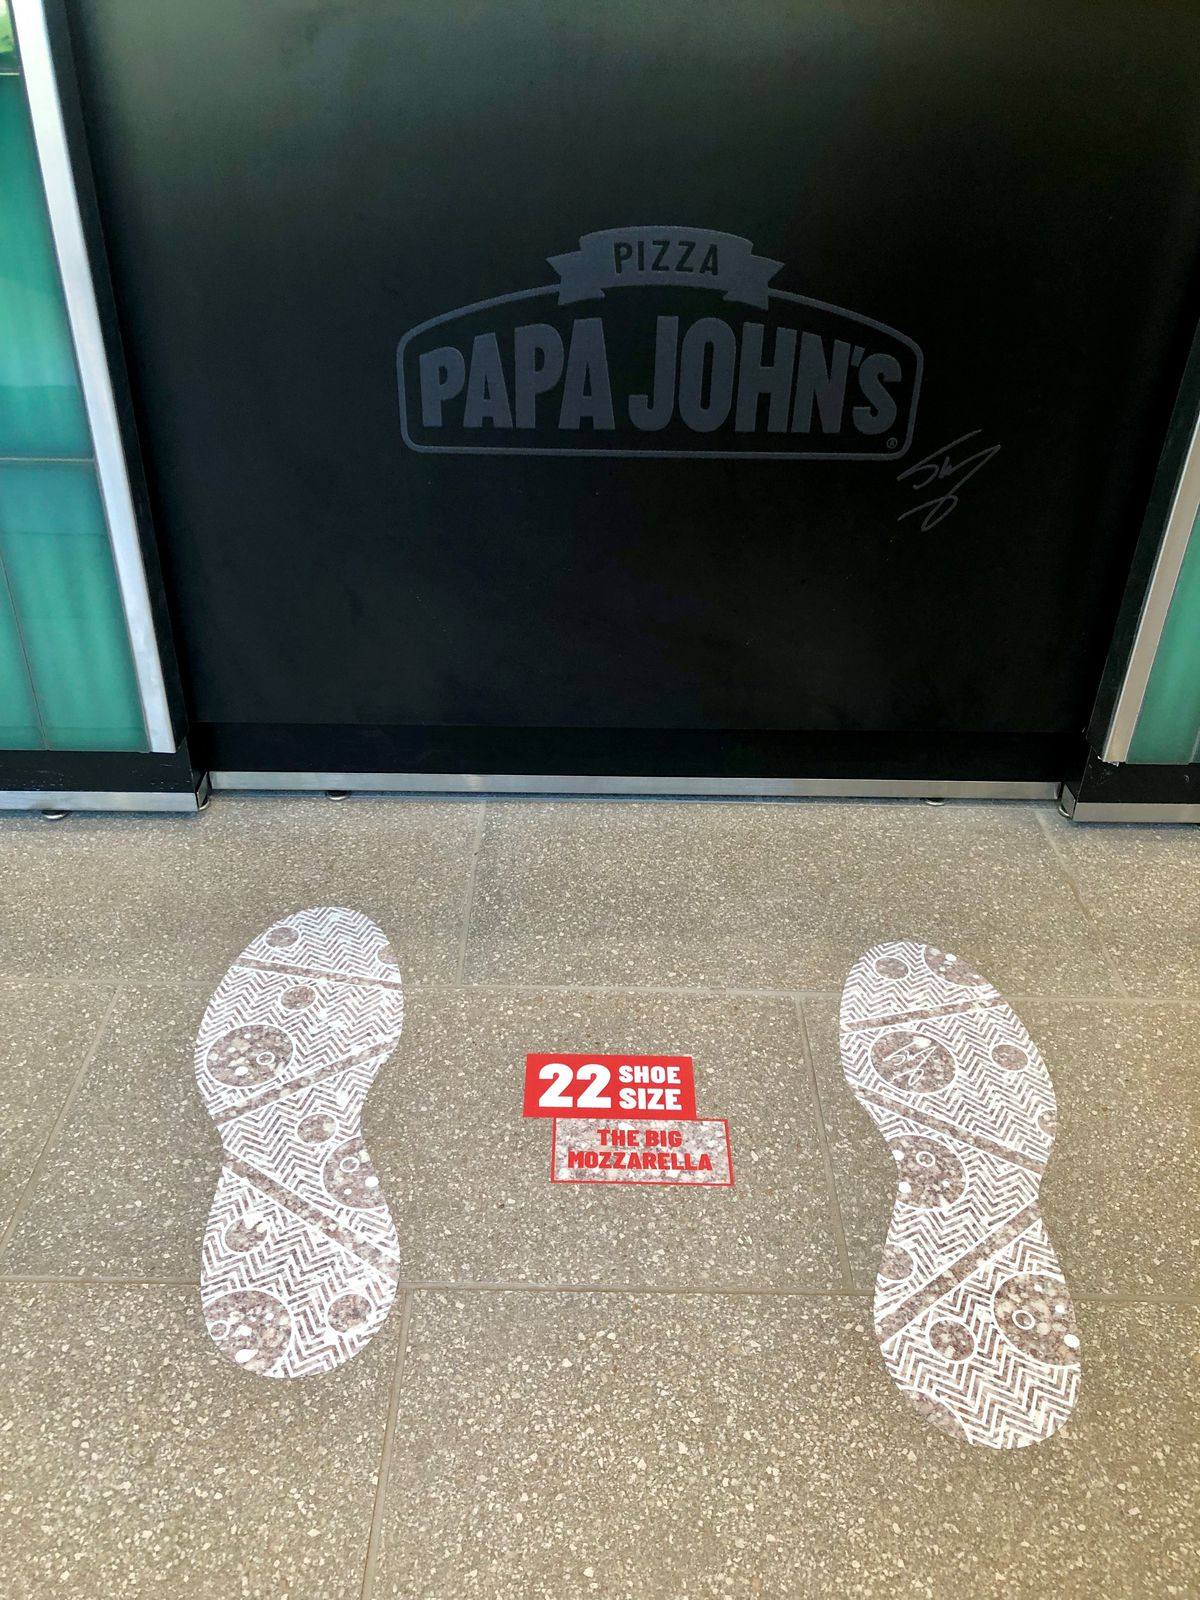 Shaq's size 22 shoe prints at the entrance to his new State Street Papa John's